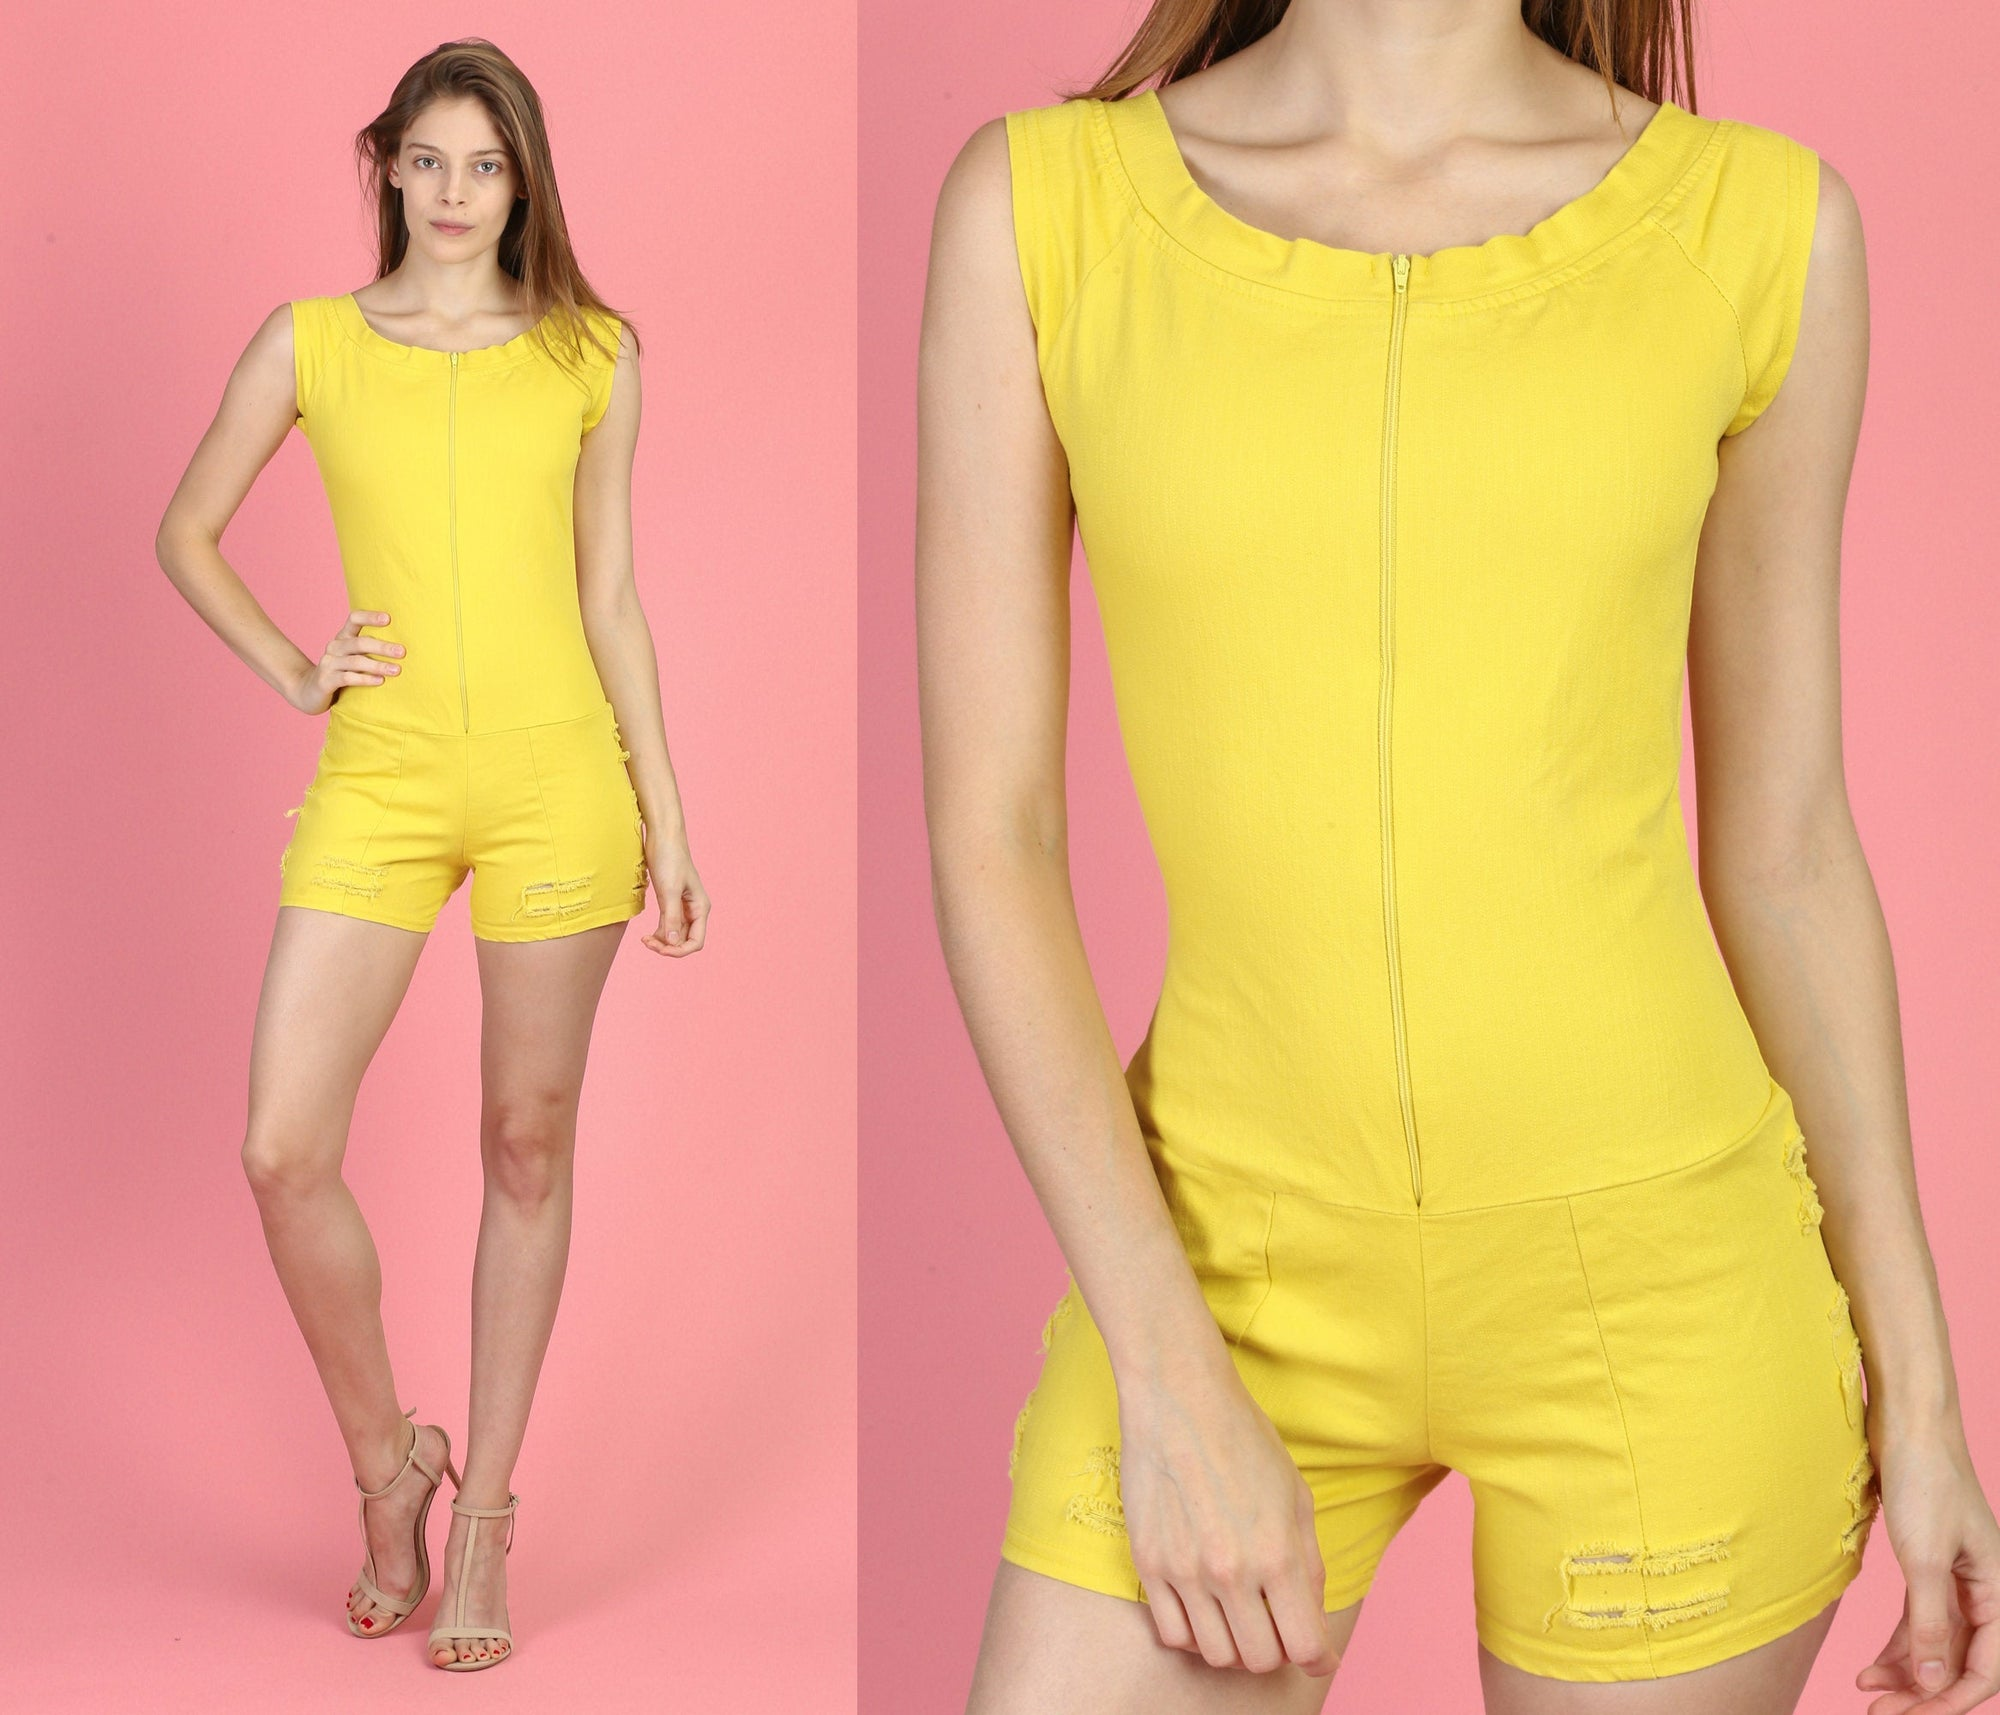 90s Yellow Ripped Denim Romper - XS to Small